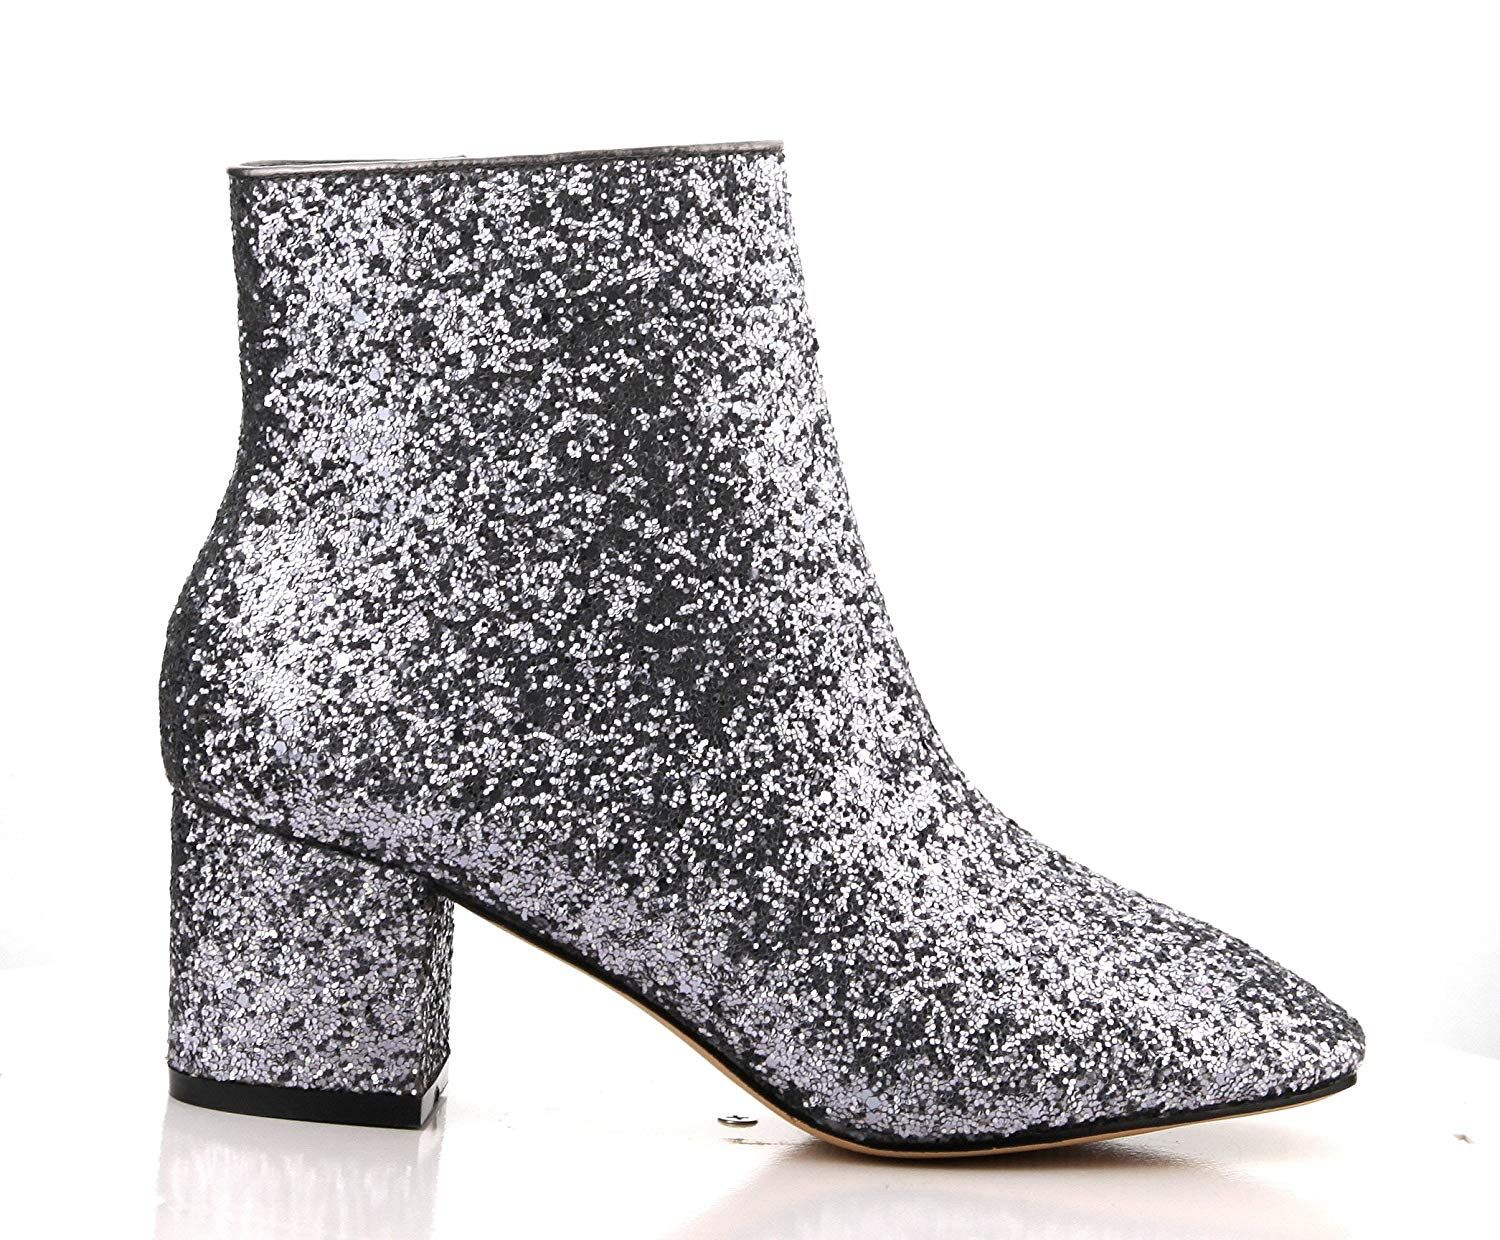 86c357b6d5d Hot Heels Shoetique Cape Robbin Tal 1 Pewter Glitter Chunky Block Heeled  Short Glitter Ankle Boots    We do hope that you actually enjoy our photo.